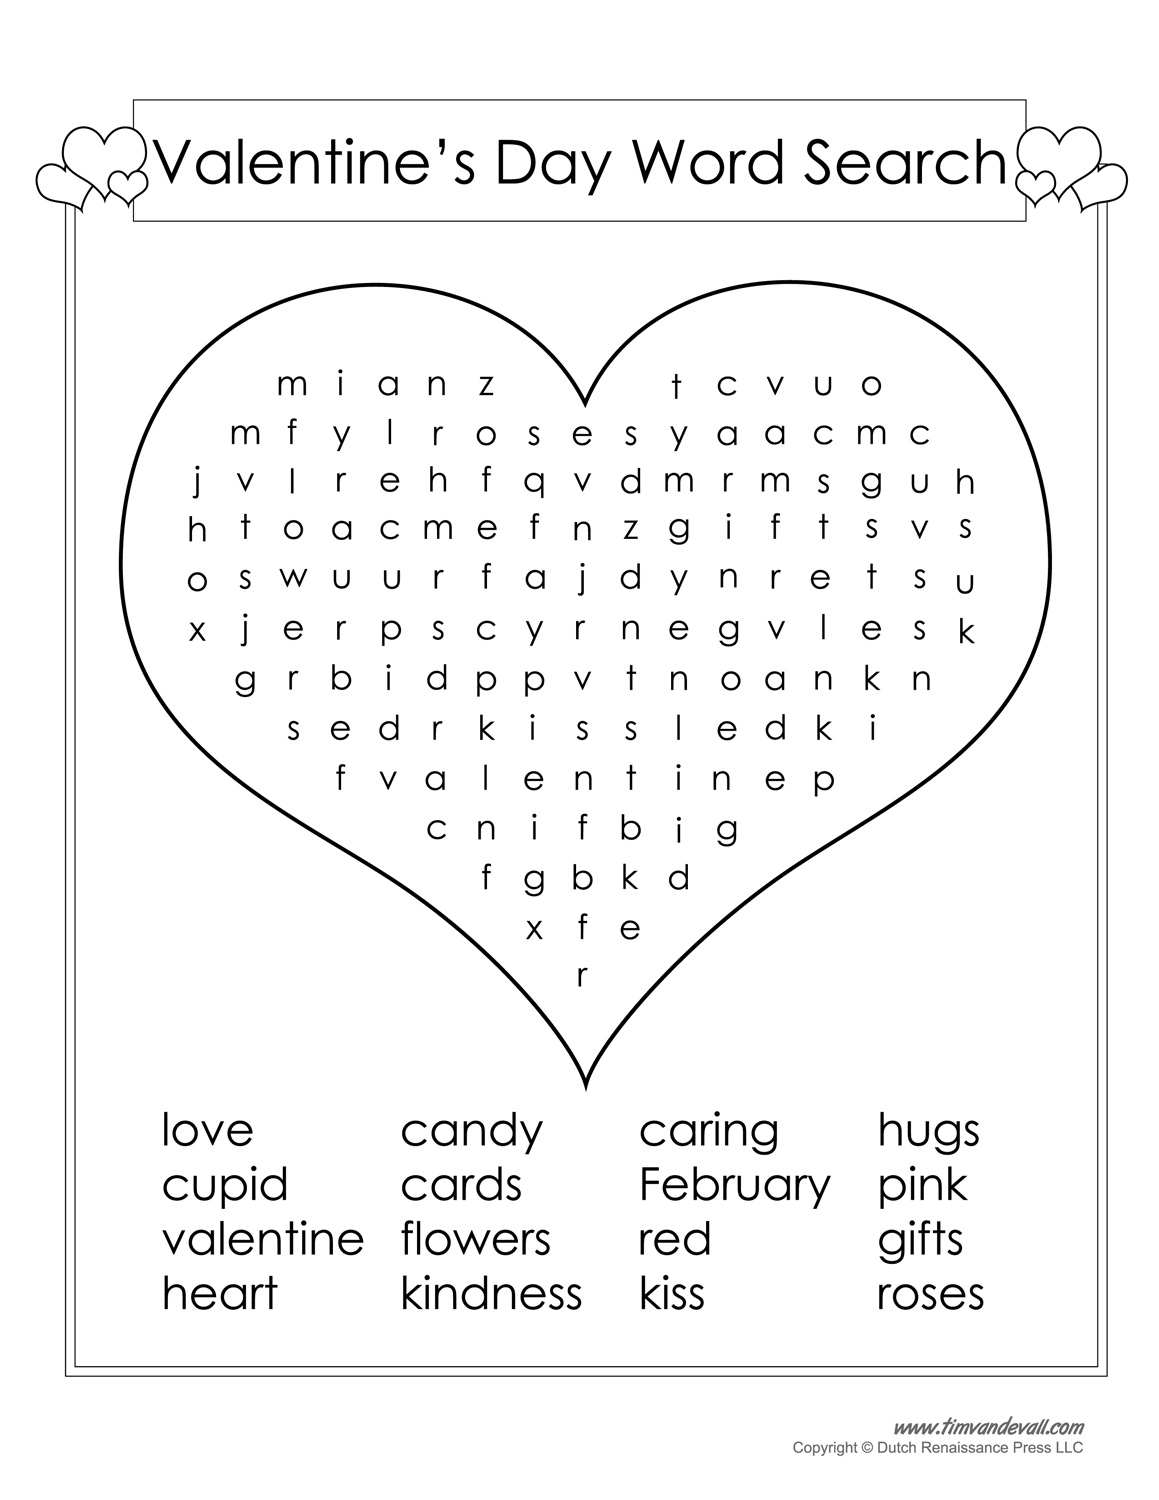 12 Valentine's Day Word Search | Kittybabylove - Printable Valentine Heart Puzzle